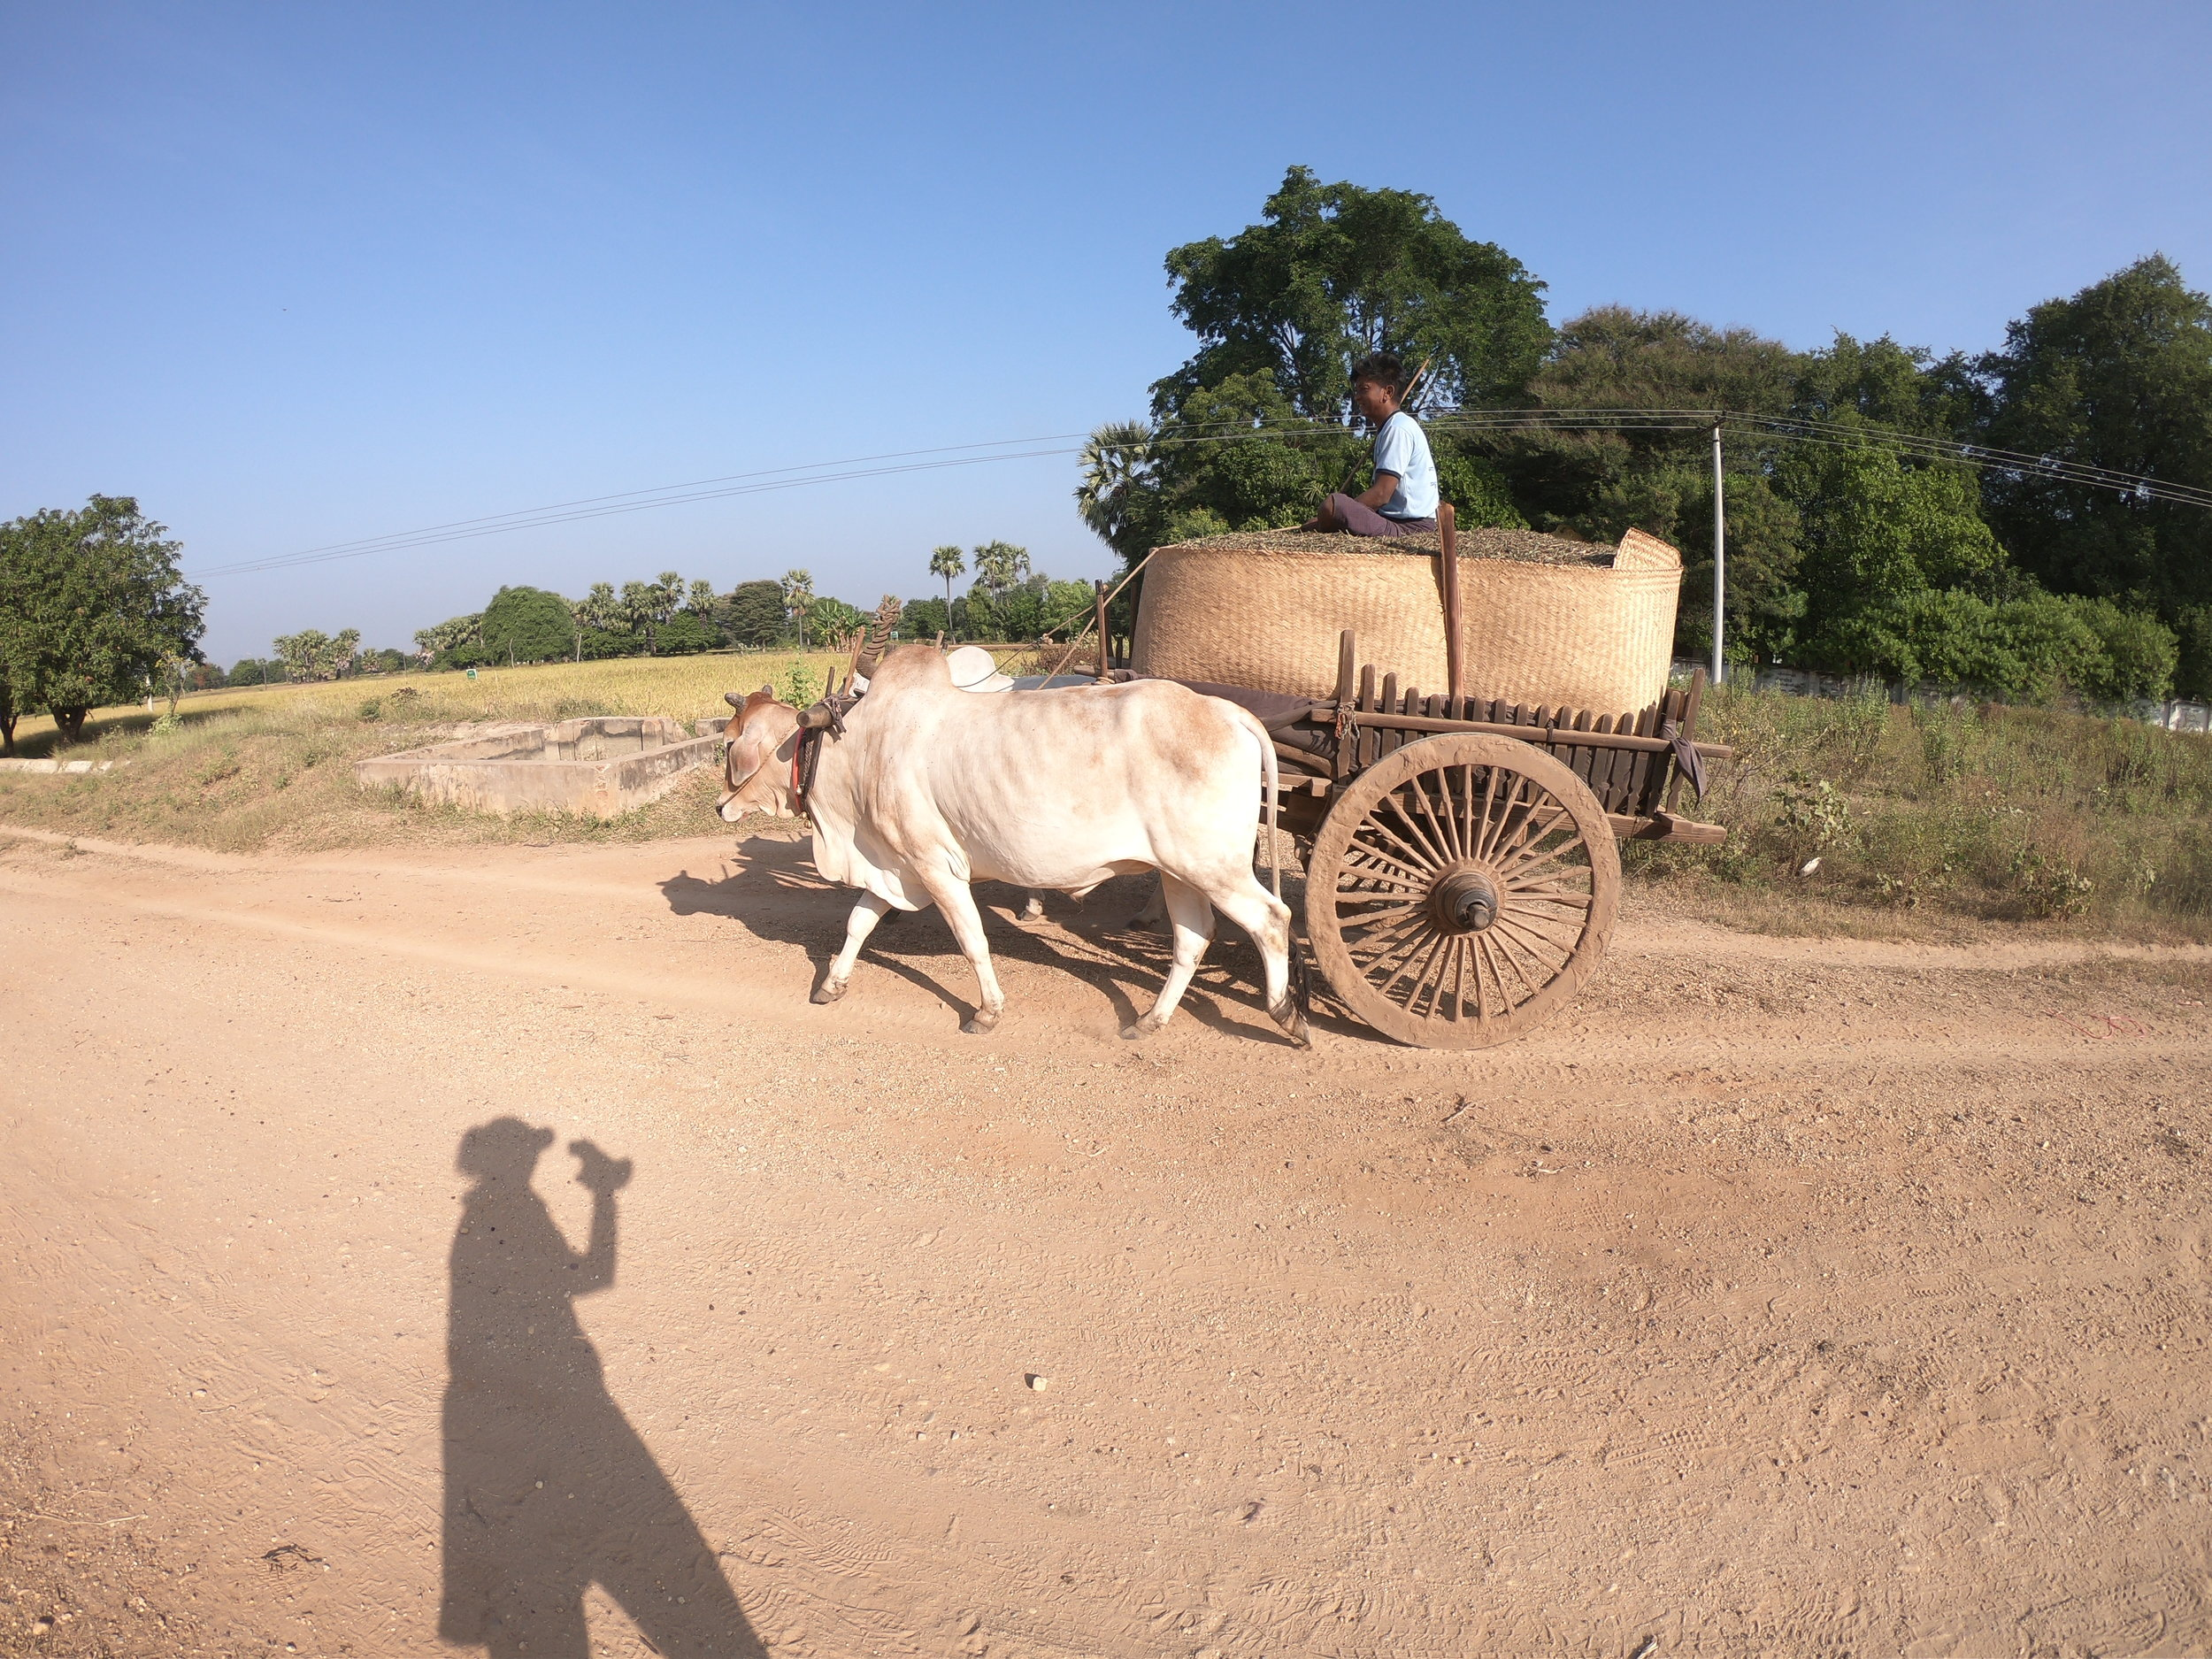 Ox cart on the course